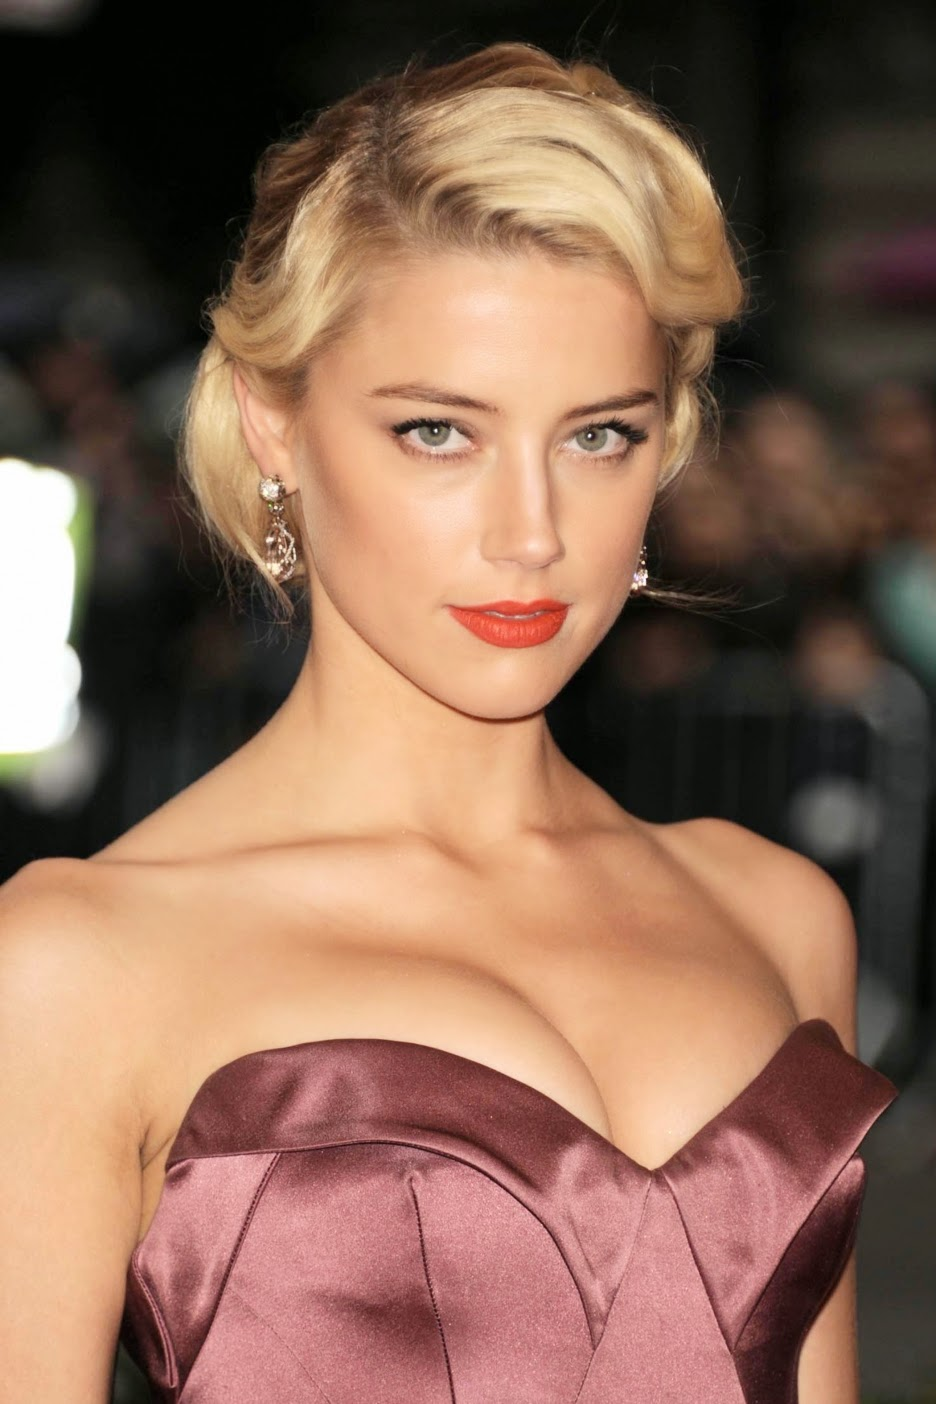 Amber Heard Is The Most Scientifically Beautiful Woman: STAR CELEBRITY WALLPAPERS: Amber Heard HD Wallpapers